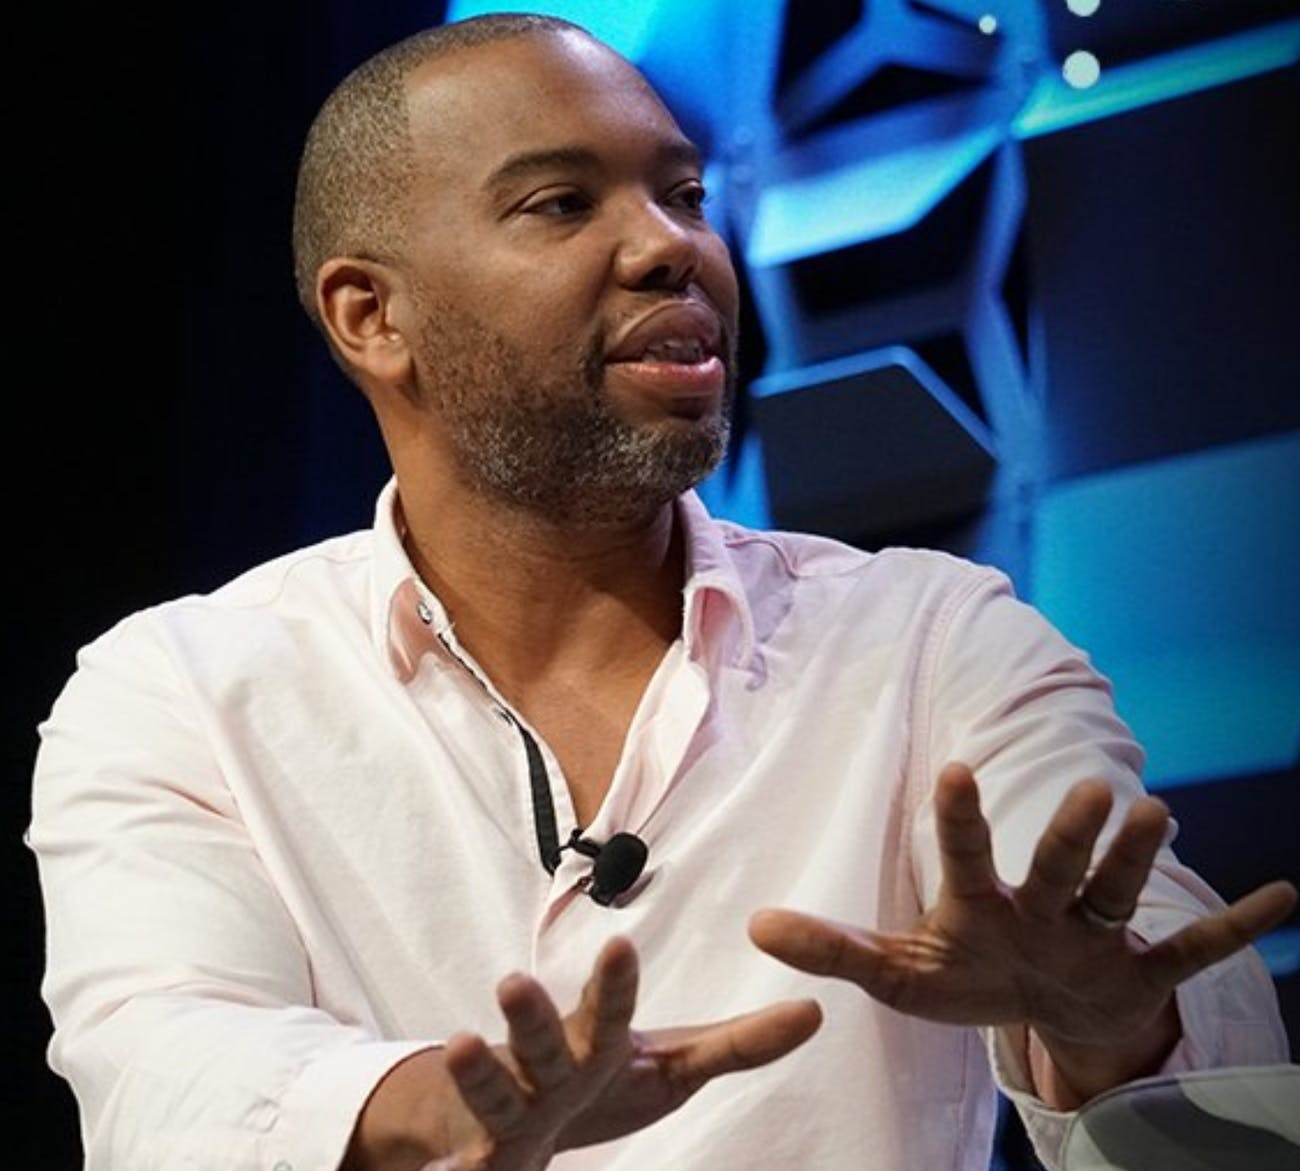 Ta-Nehisi Coates on March 10, 2018 at the South by Southwest festival in Austin, Texas.